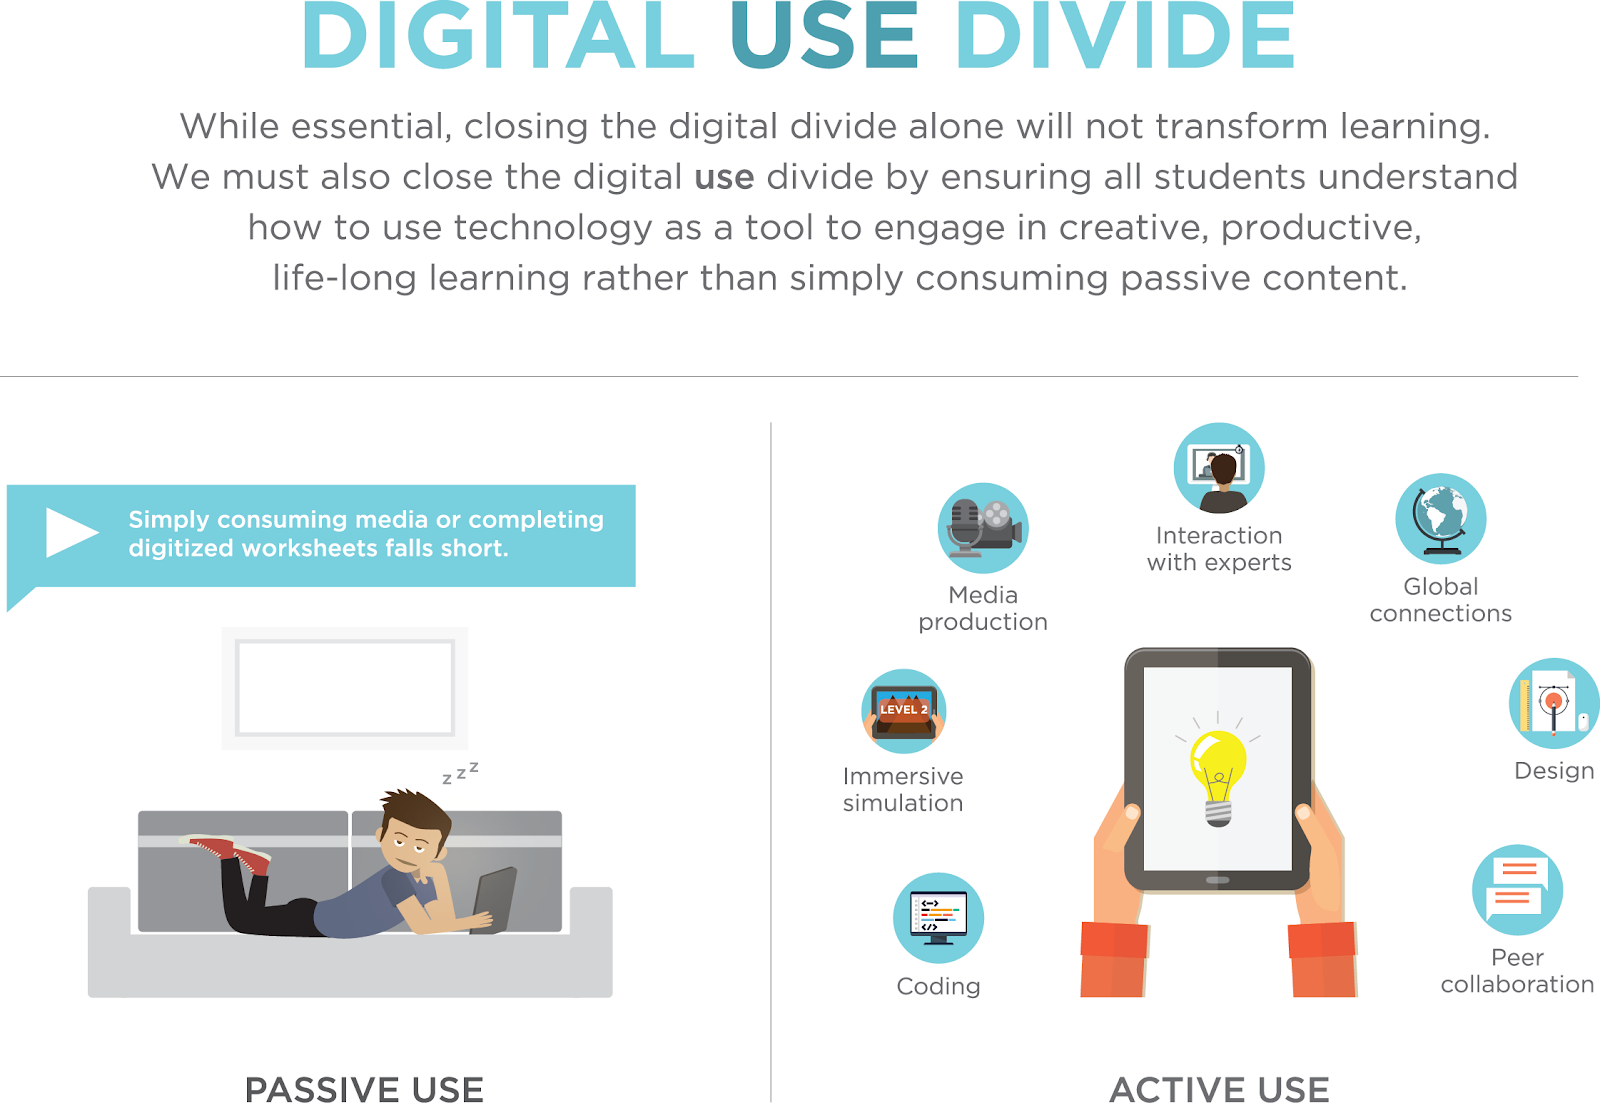 DigitalDivide_Infographic (2).png